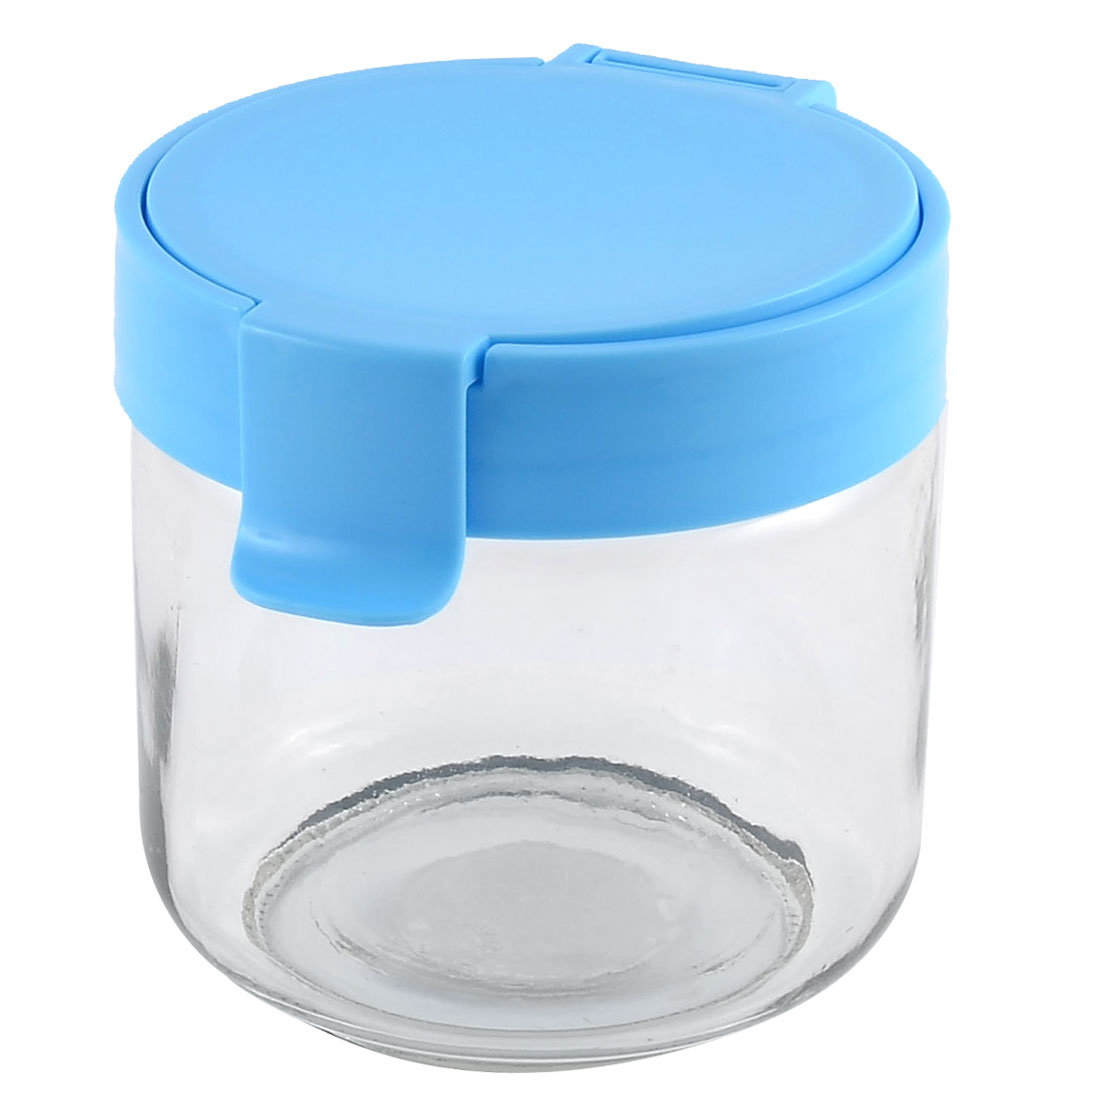 Household Glass Cylinder Melon Seeds Tea Candy Coffee Food Storage Container Box Blue 730ML